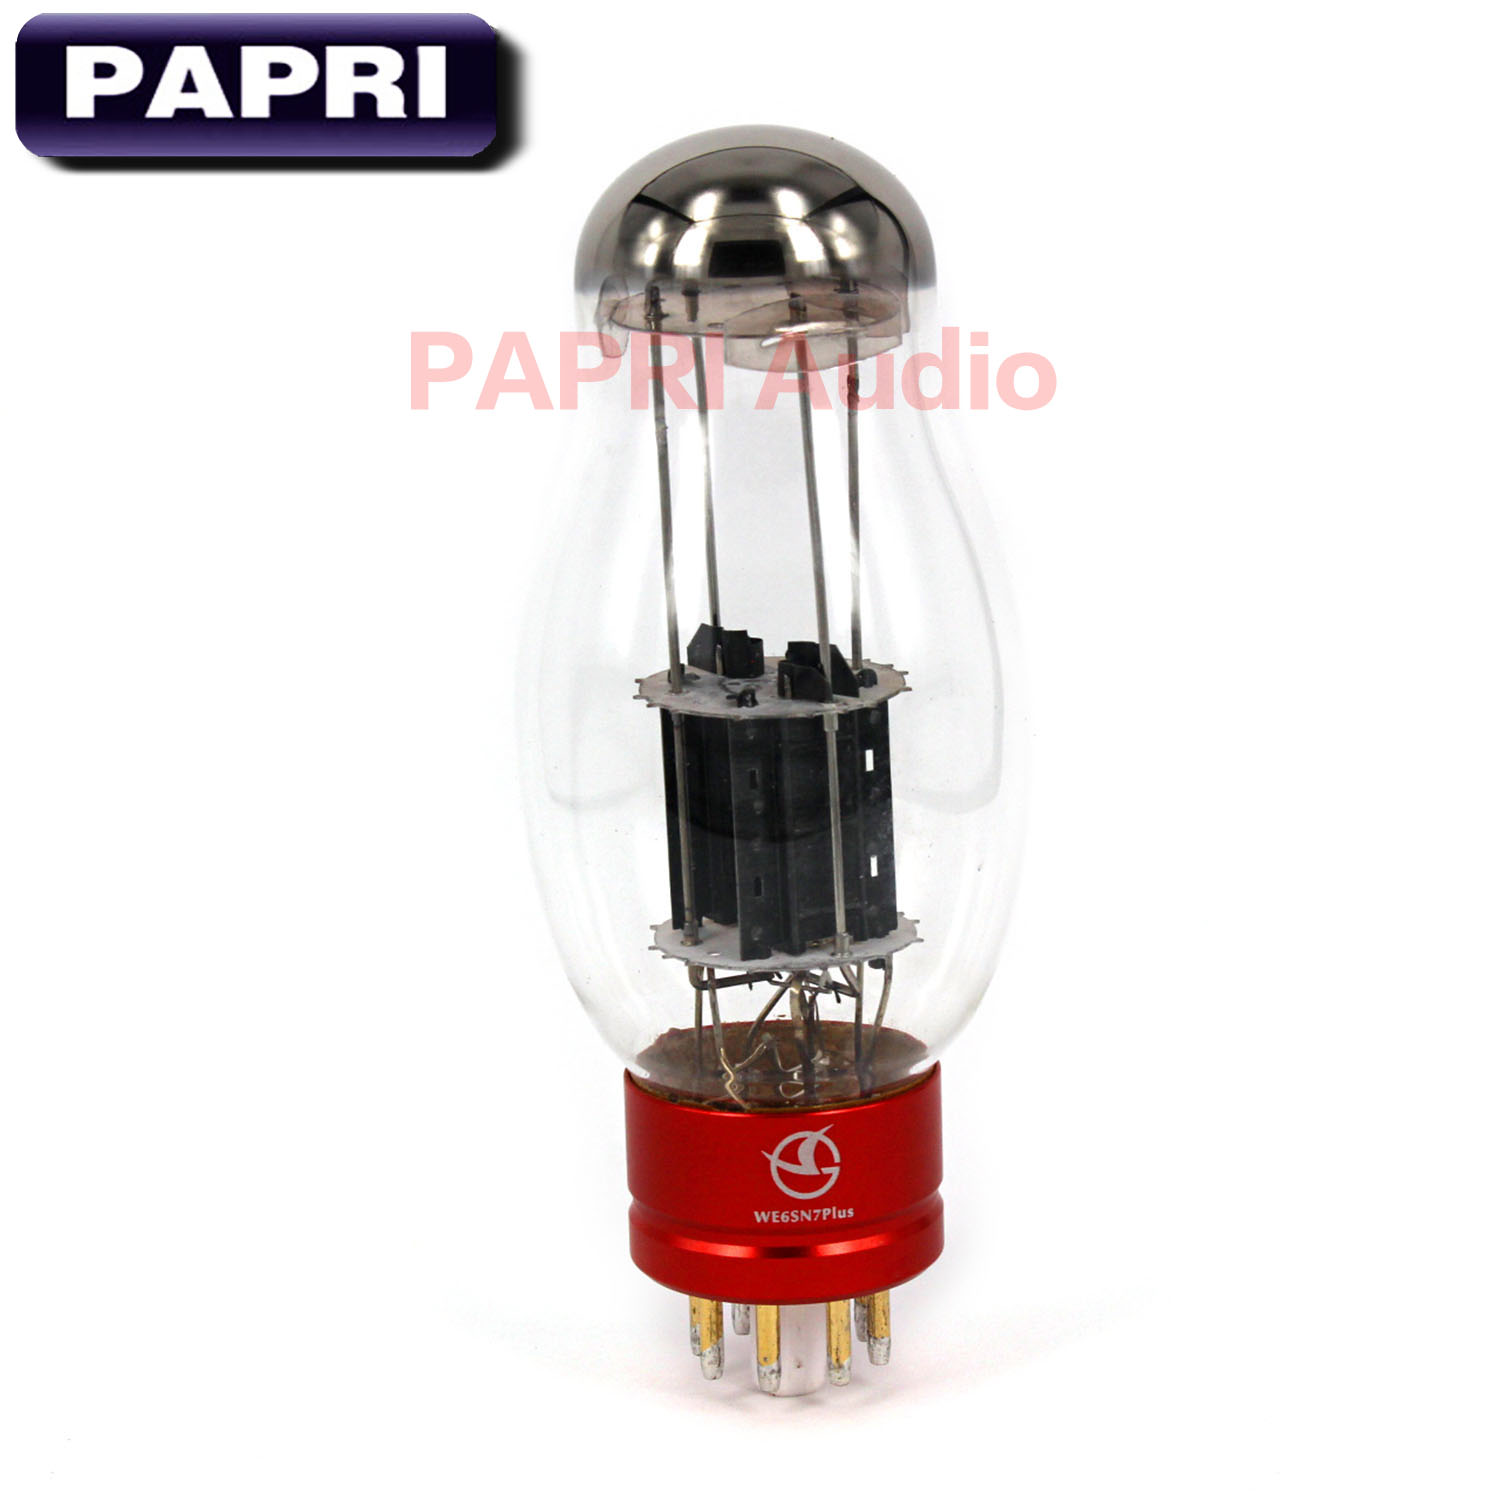 PAPRI Newest WE6SN7 PLUS Vacuum Tube HiFi Shuguang Treasure For Audio HIFI DIY Tube Amplifier Factory Tested Matched 1PCS цена и фото